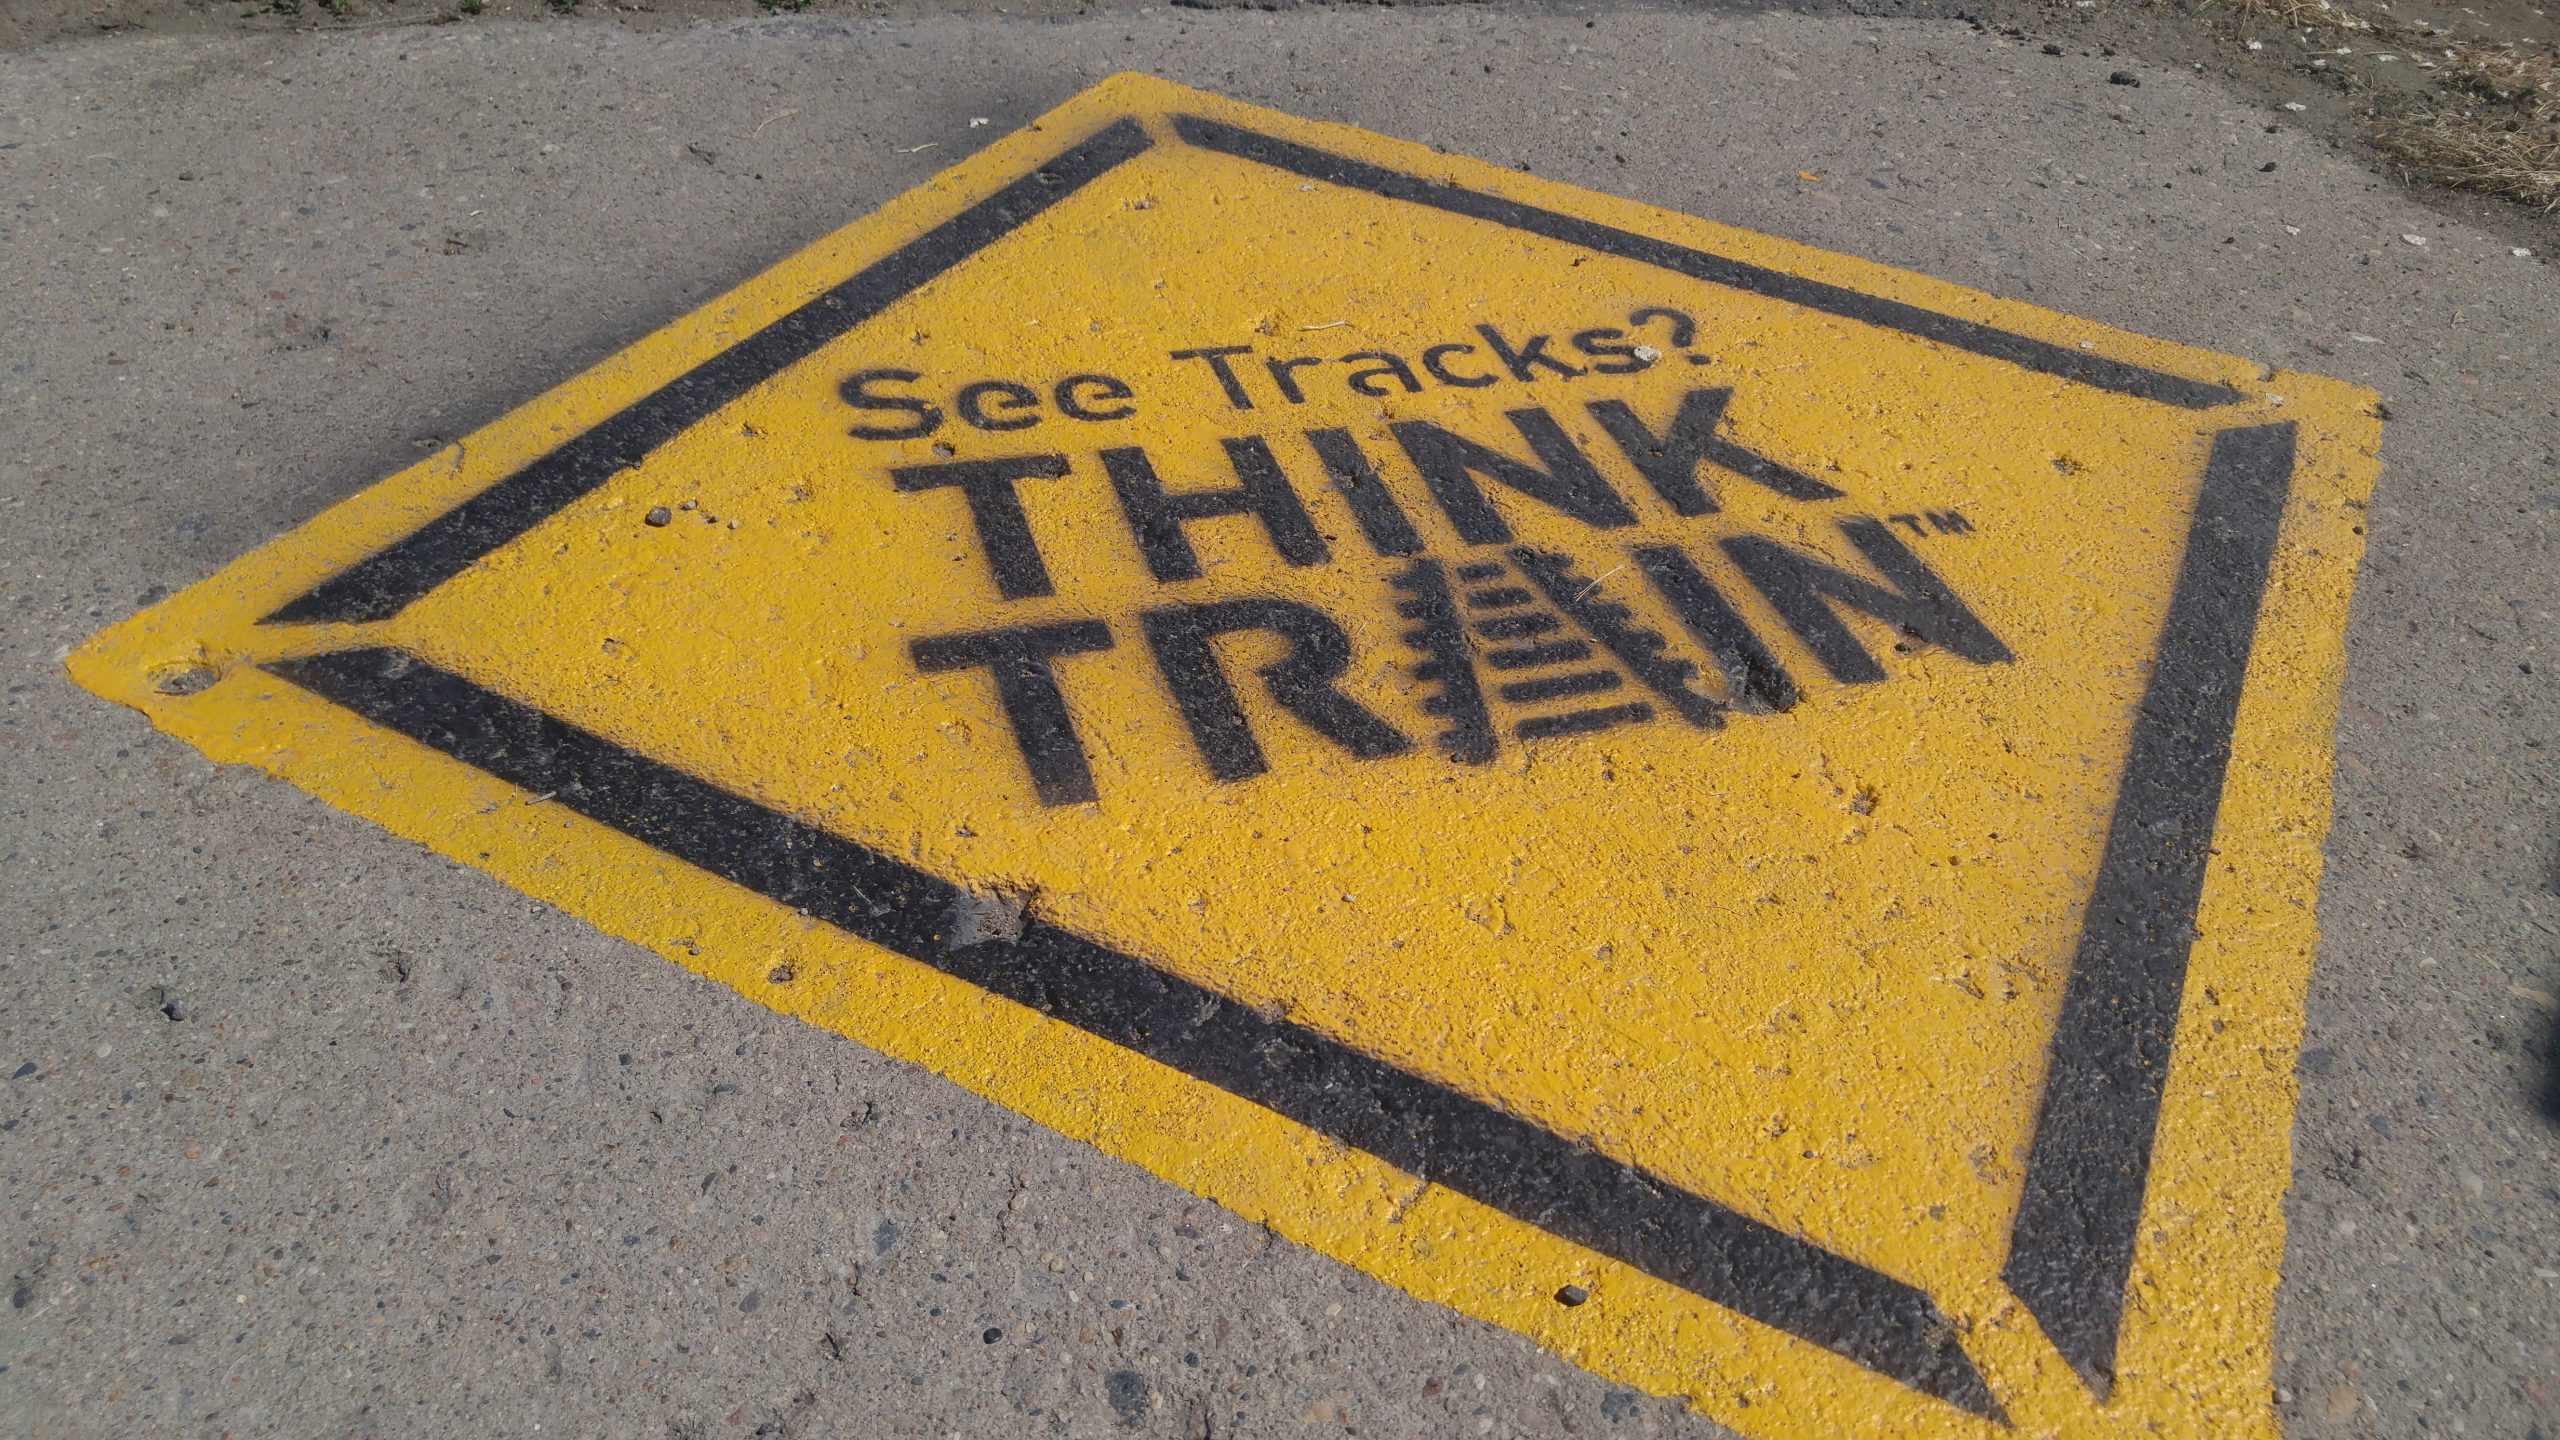 City paints sidewalks for new train safety campaign